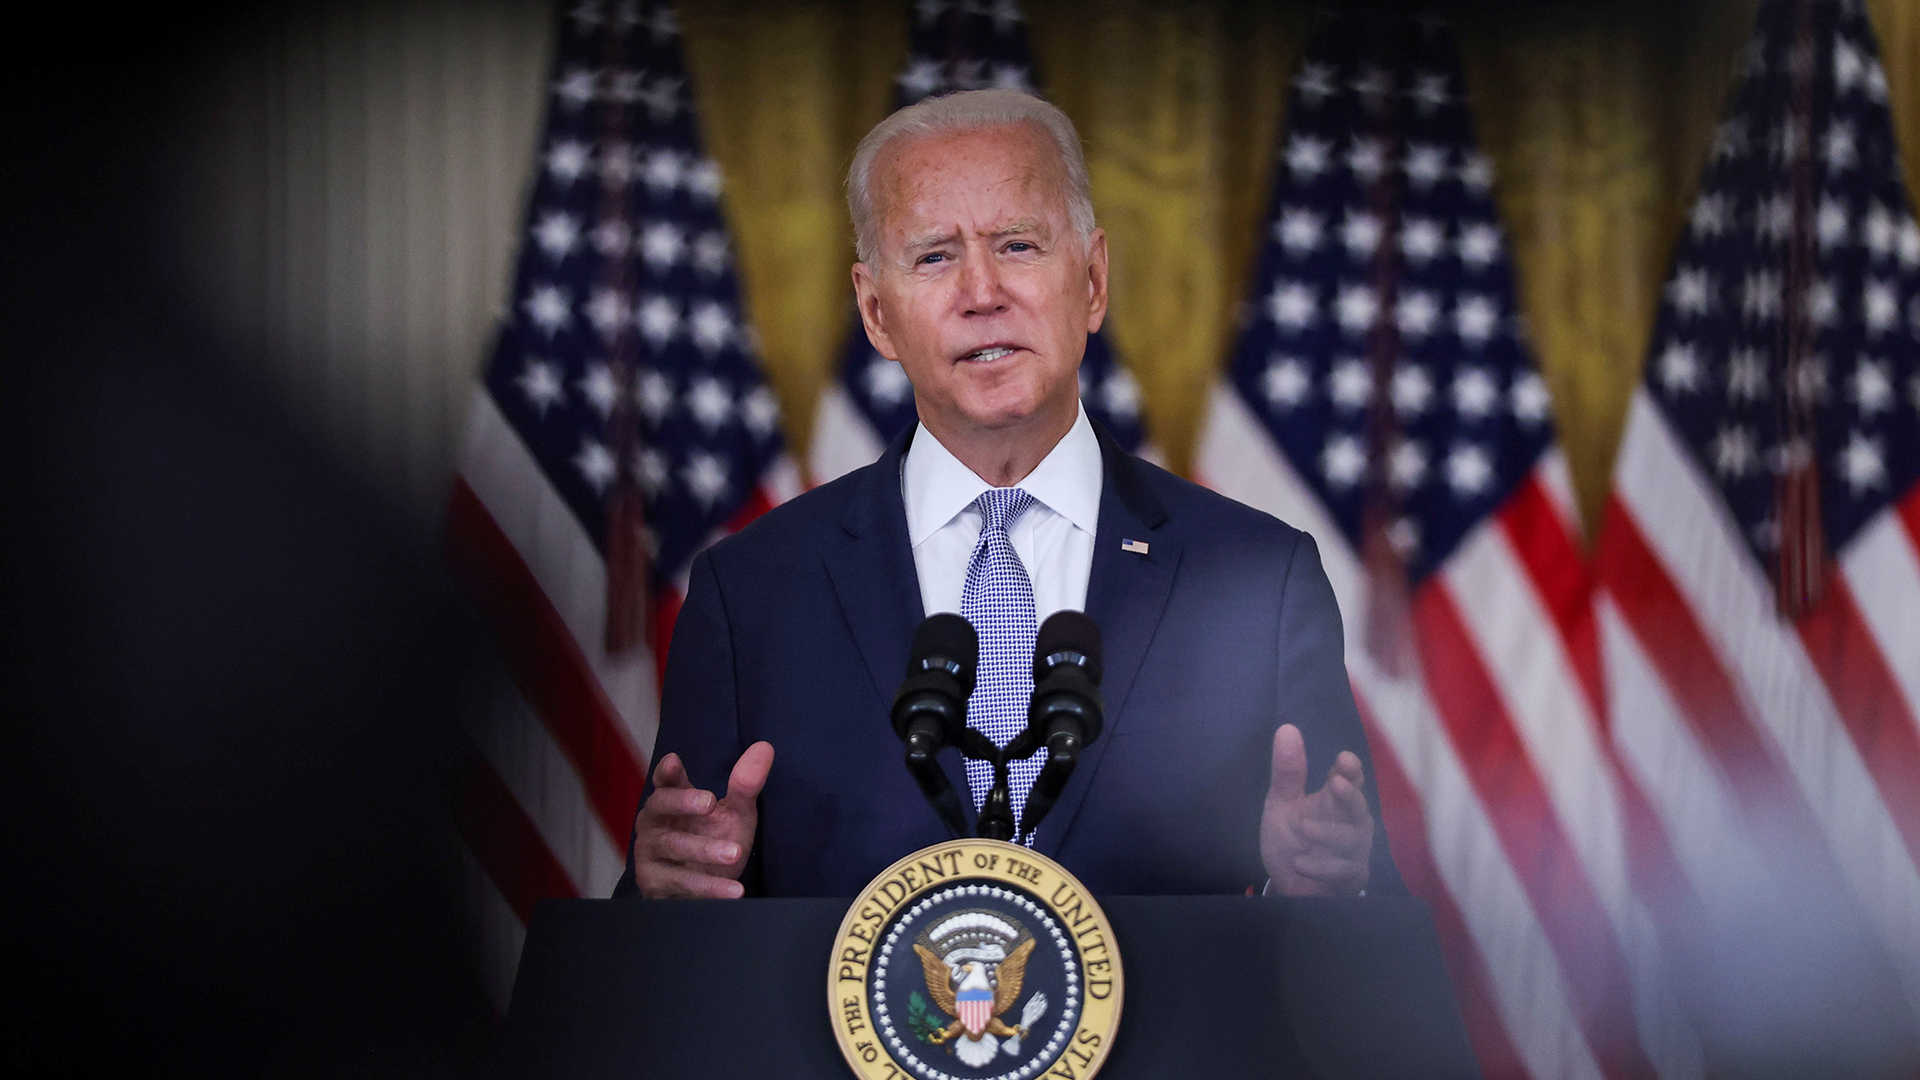 Watch live: Biden delivers remarks on Afghanistan crisis as Taliban regains control